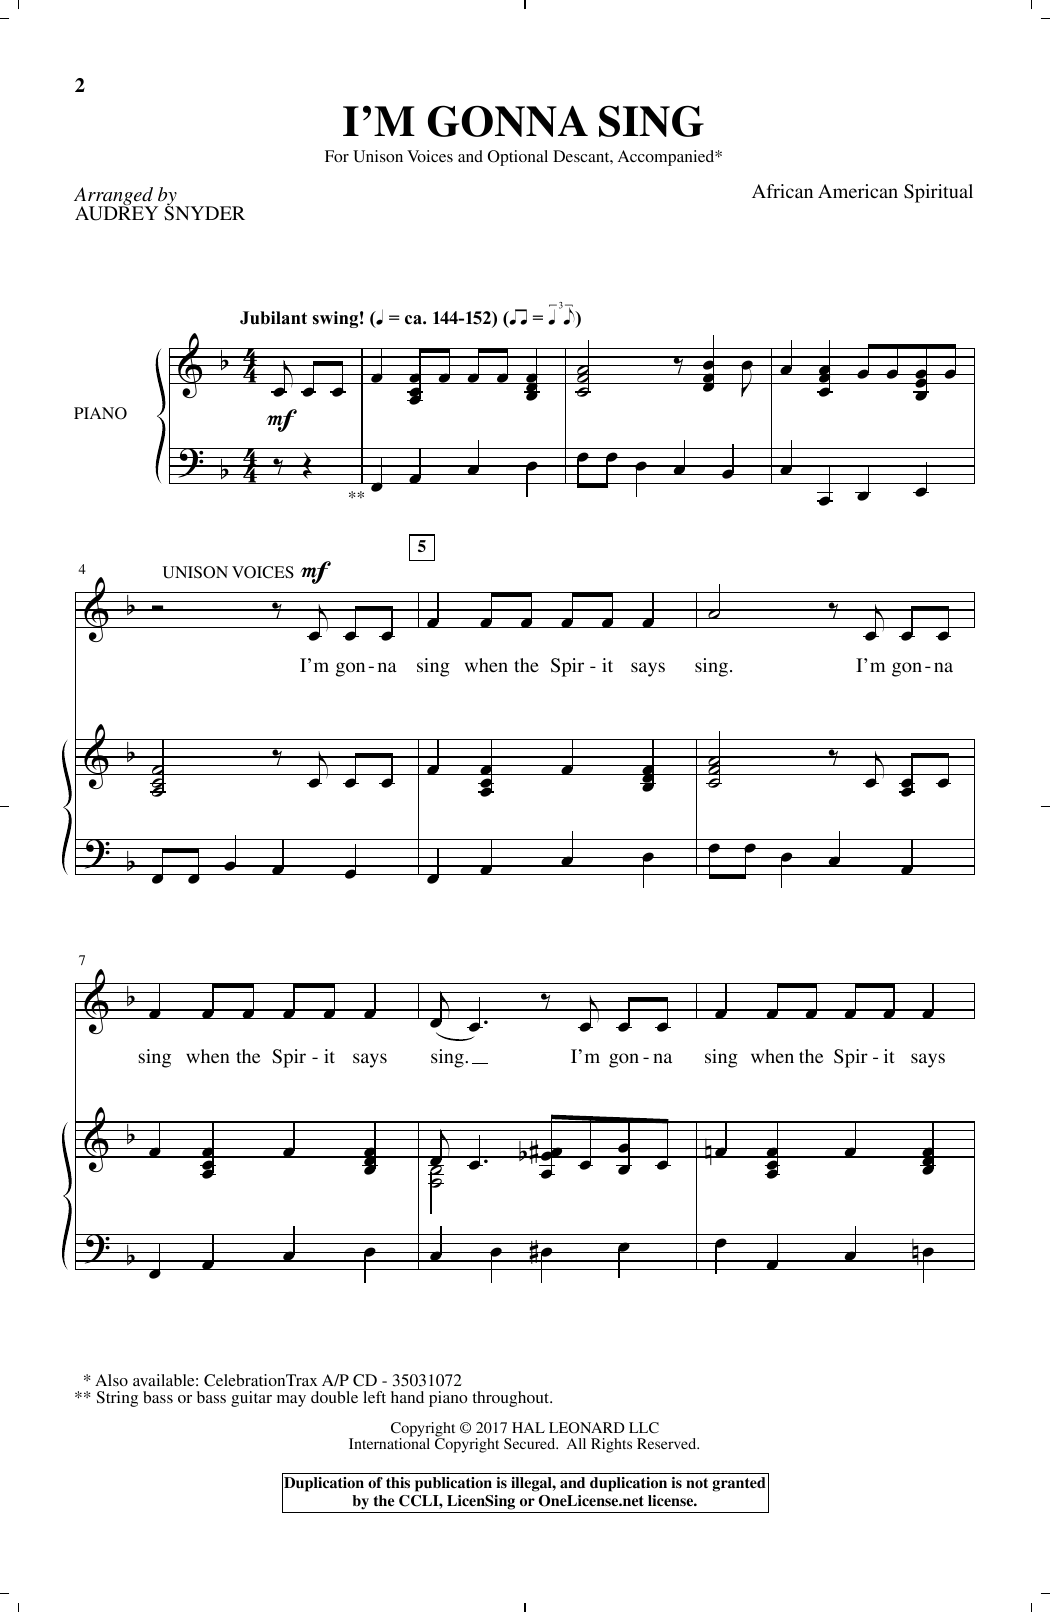 Download African-American Spiritual 'I'm Gonna Sing (arr. Audrey Snyder)' Digital Sheet Music Notes & Chords and start playing in minutes